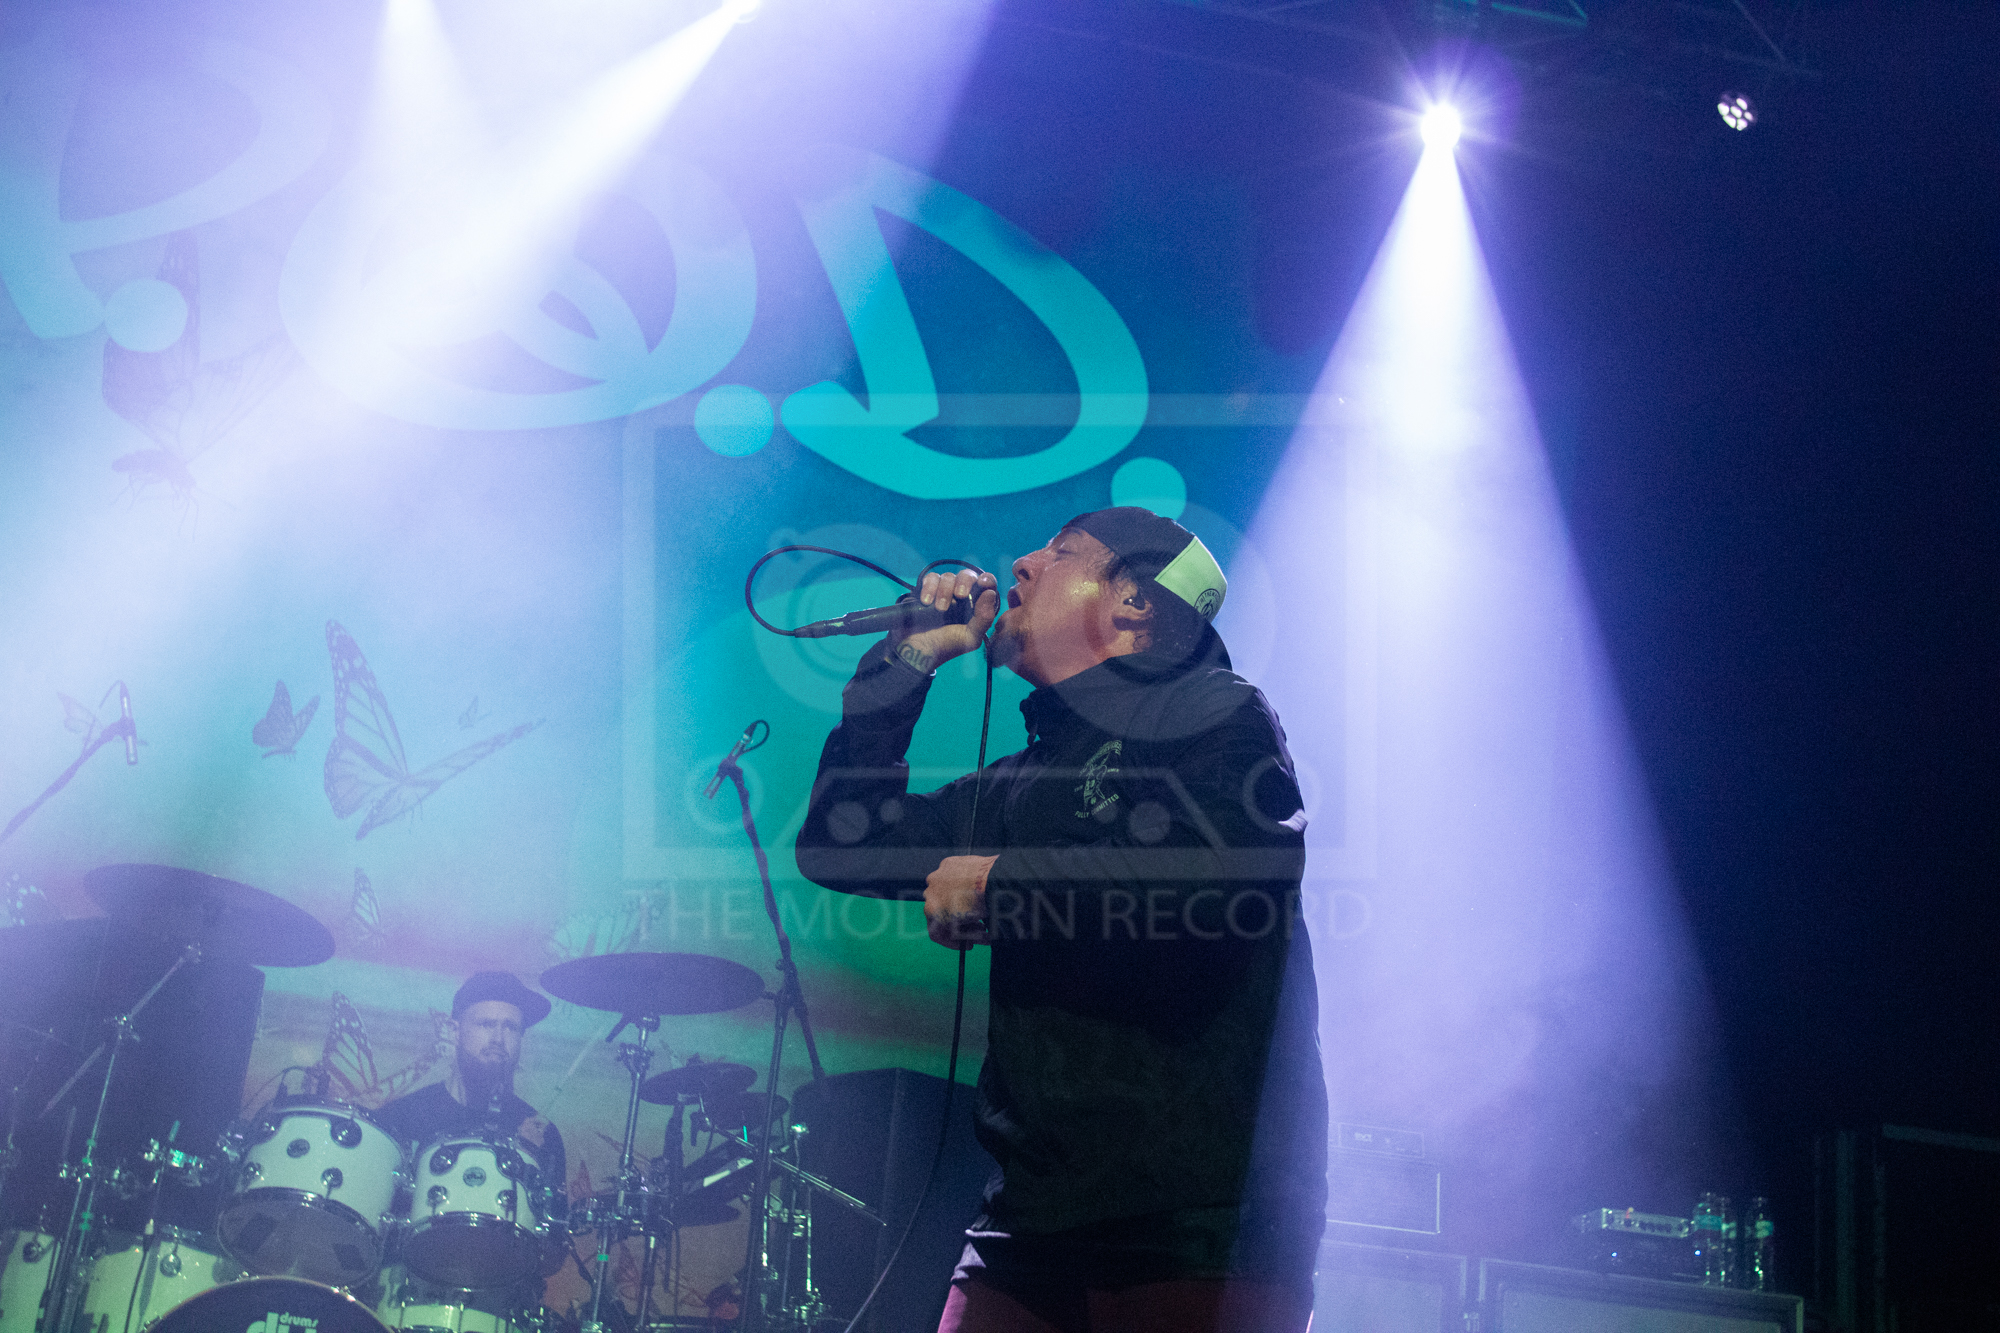 8 - P.O.D - O2 academy, Newcastle - 03-03-19 Picture by Will Gorman Photo-4612.JPG